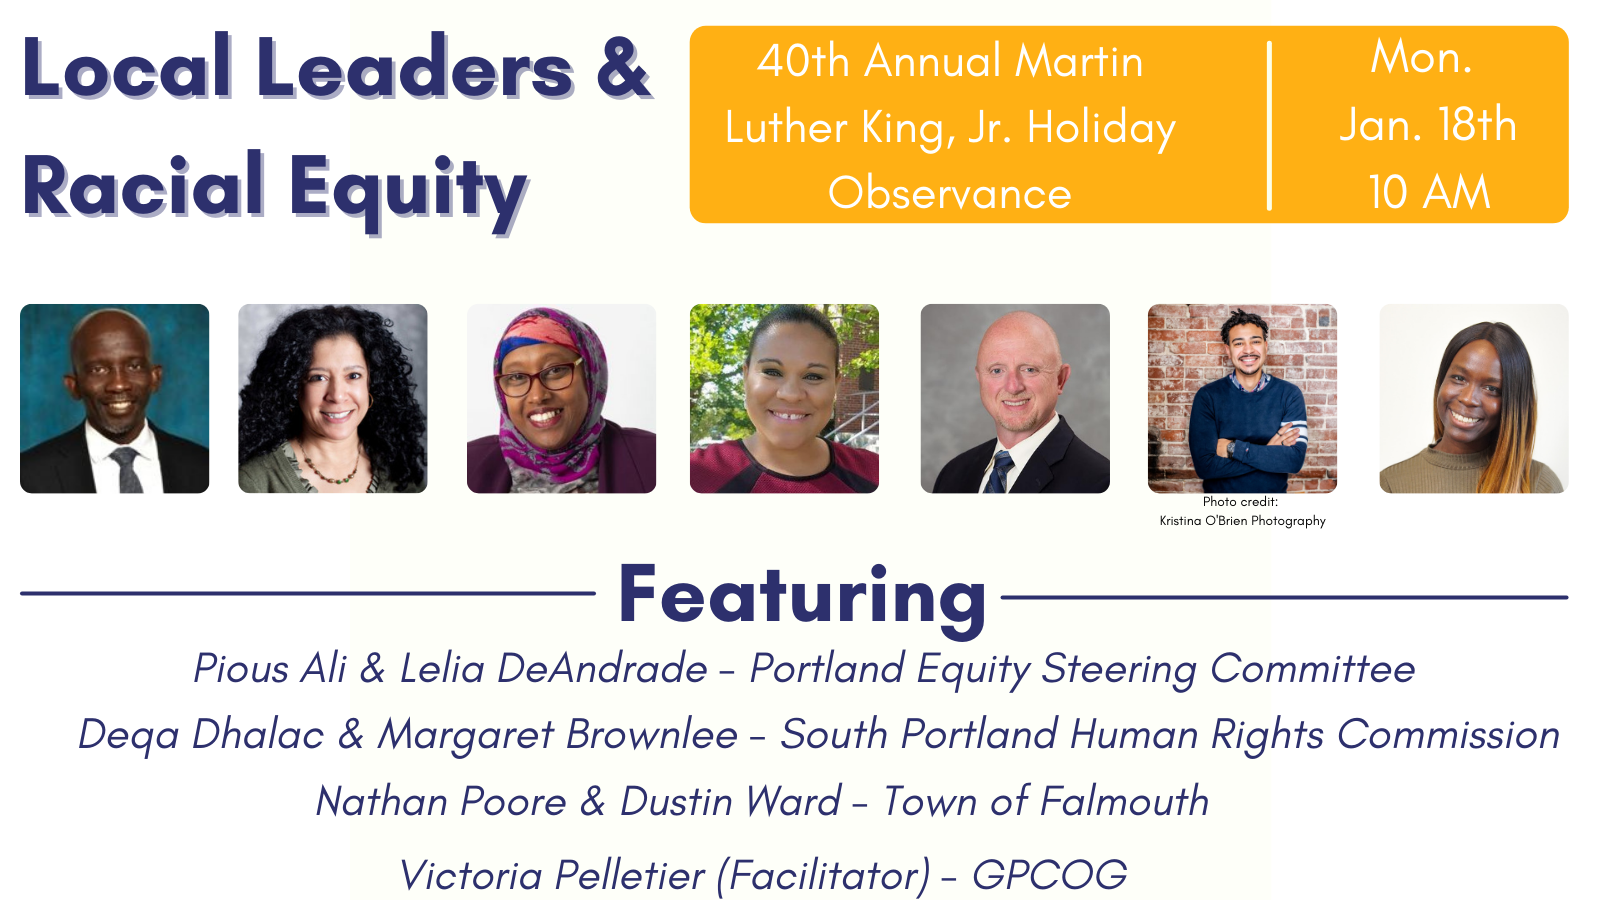 Local Leaders and Racial Equity